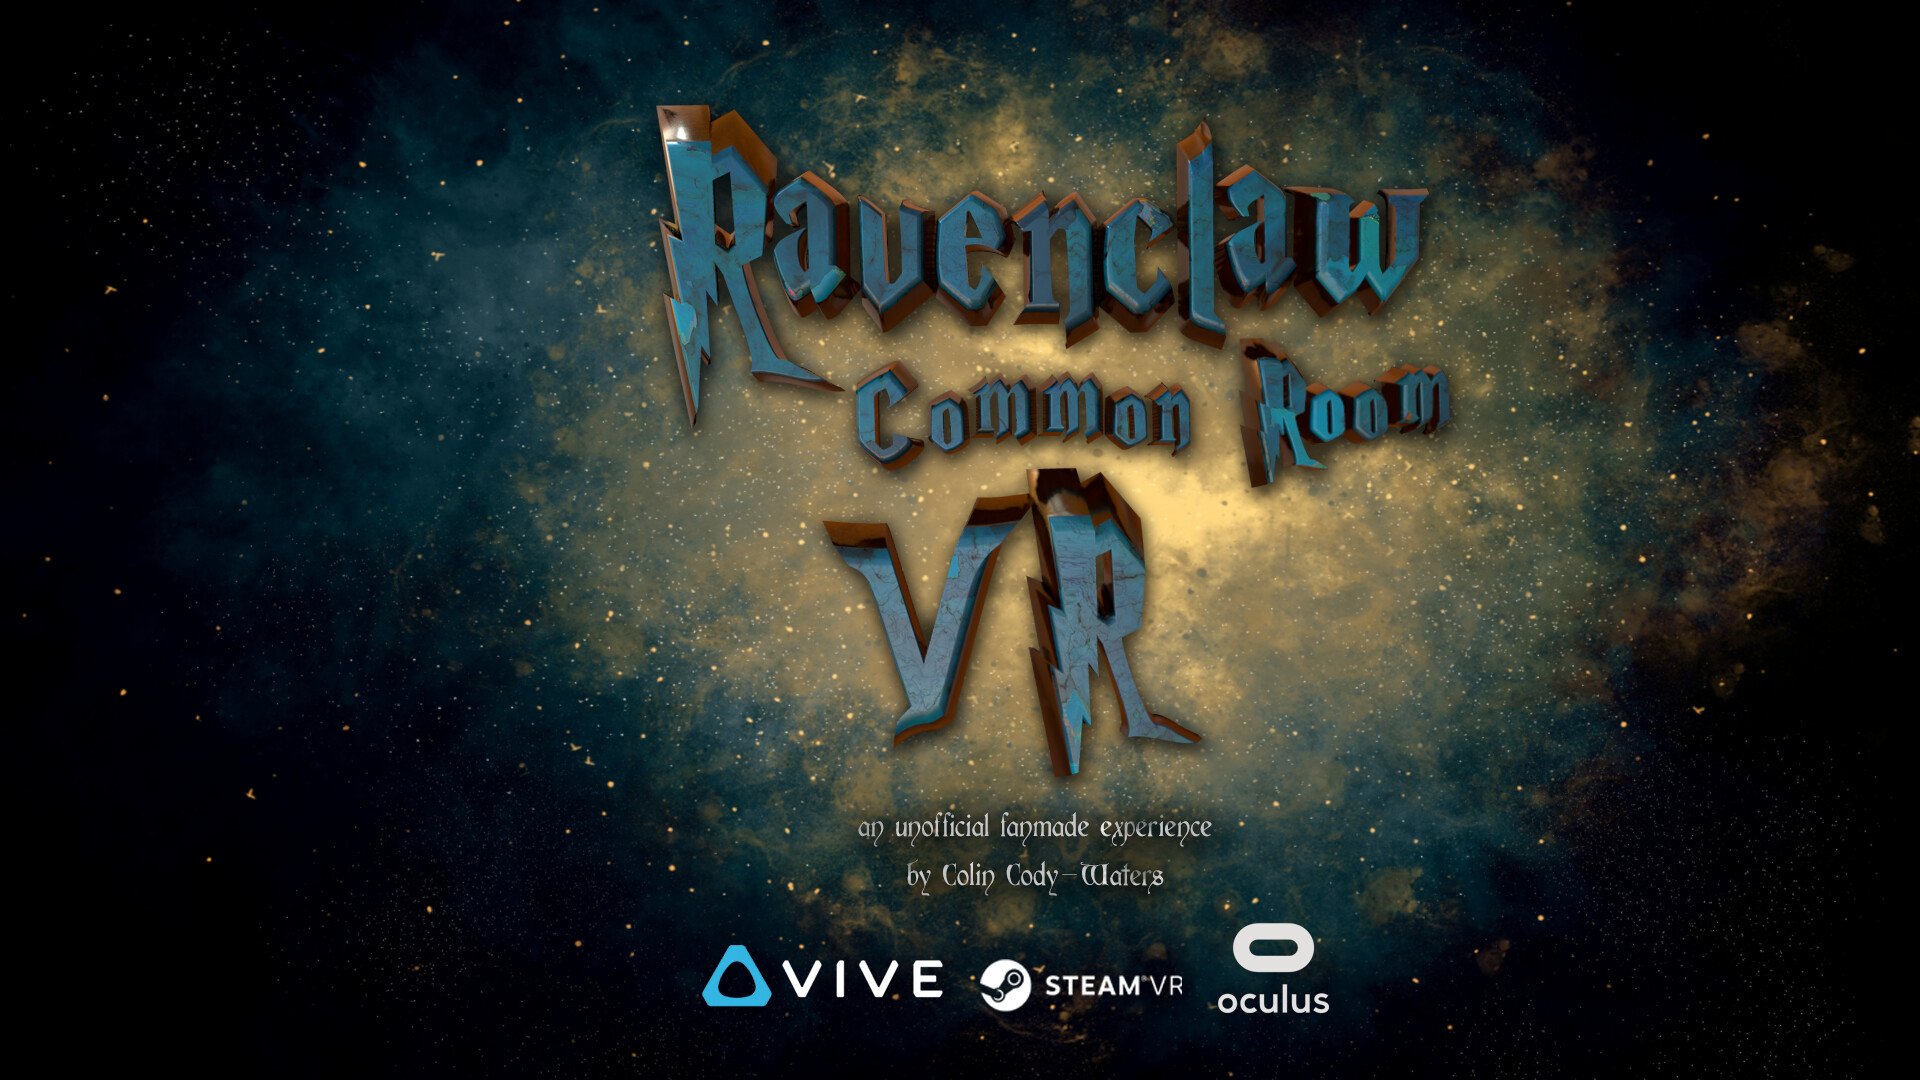 ArtStation - Ravenclaw Common Room VR, Colin Cody-Waters